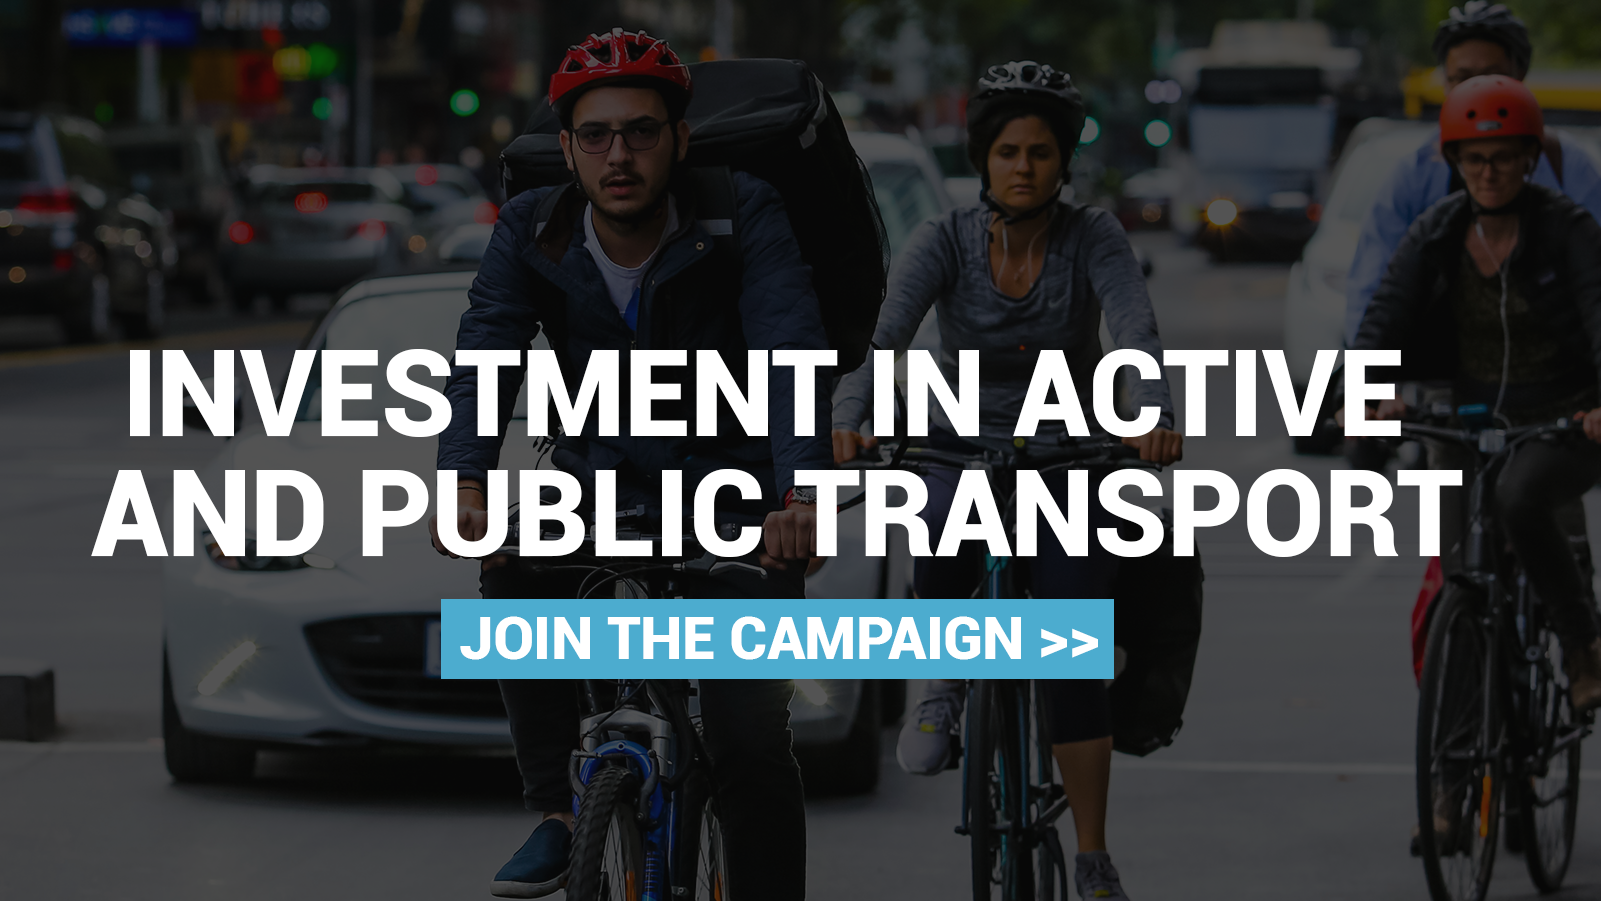 Investment in public and active transport